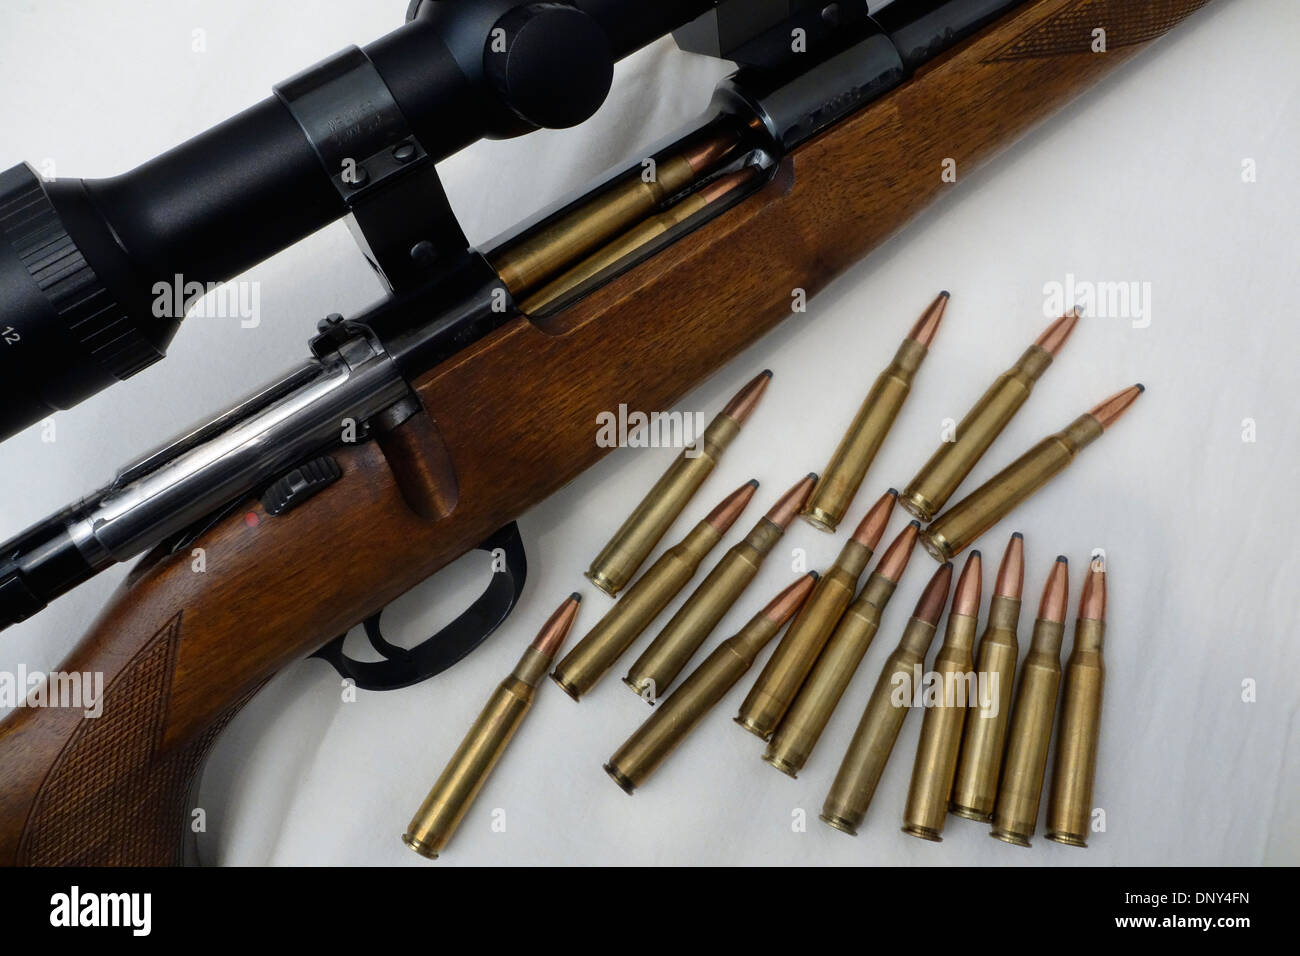 Close up of loaded rifle with telescopic sight. Open bolt and ammo scattered around. - Stock Image